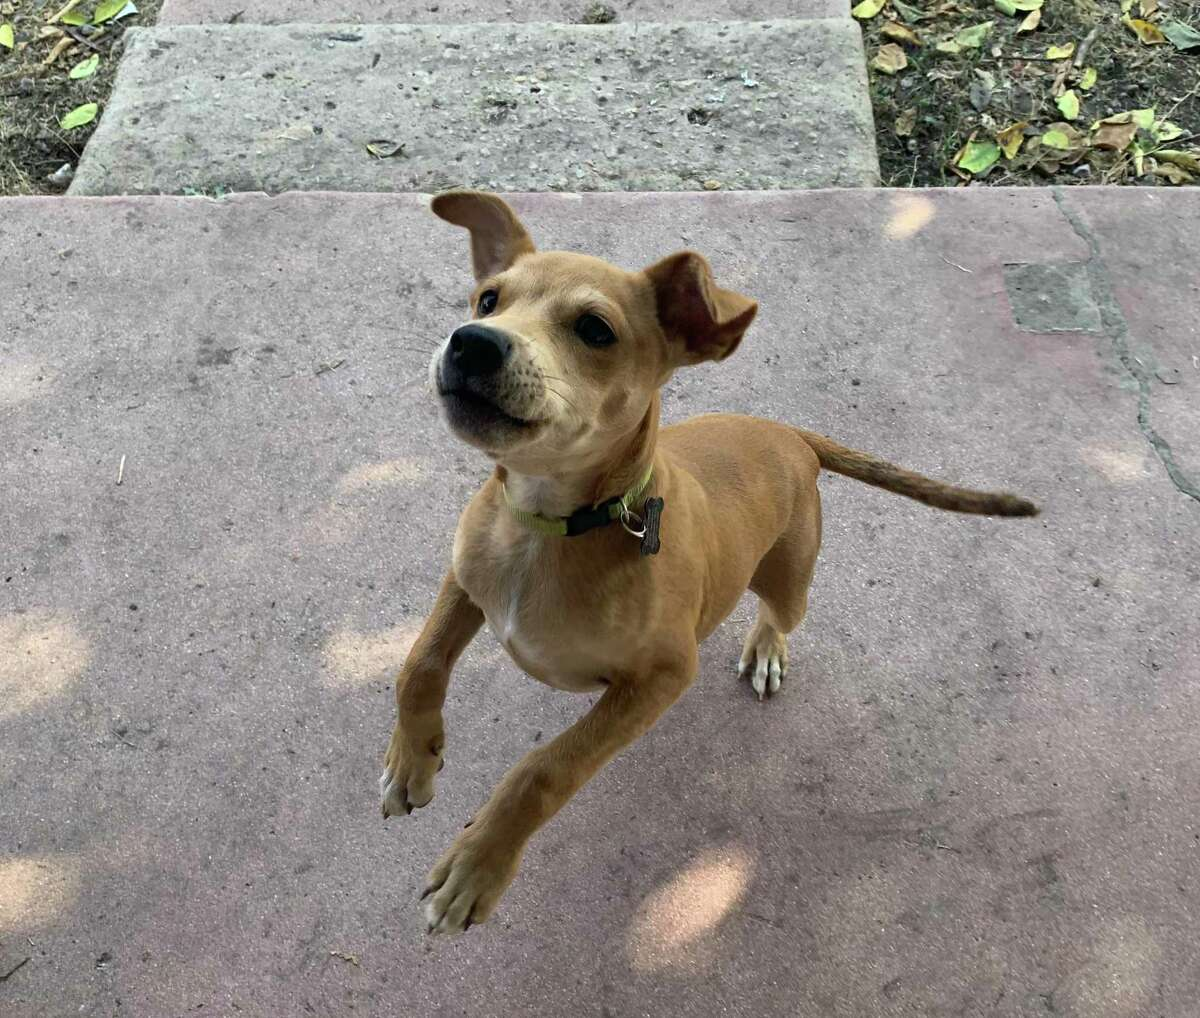 Rocky, now three weeks into settling at his new home, leaps for a treat.